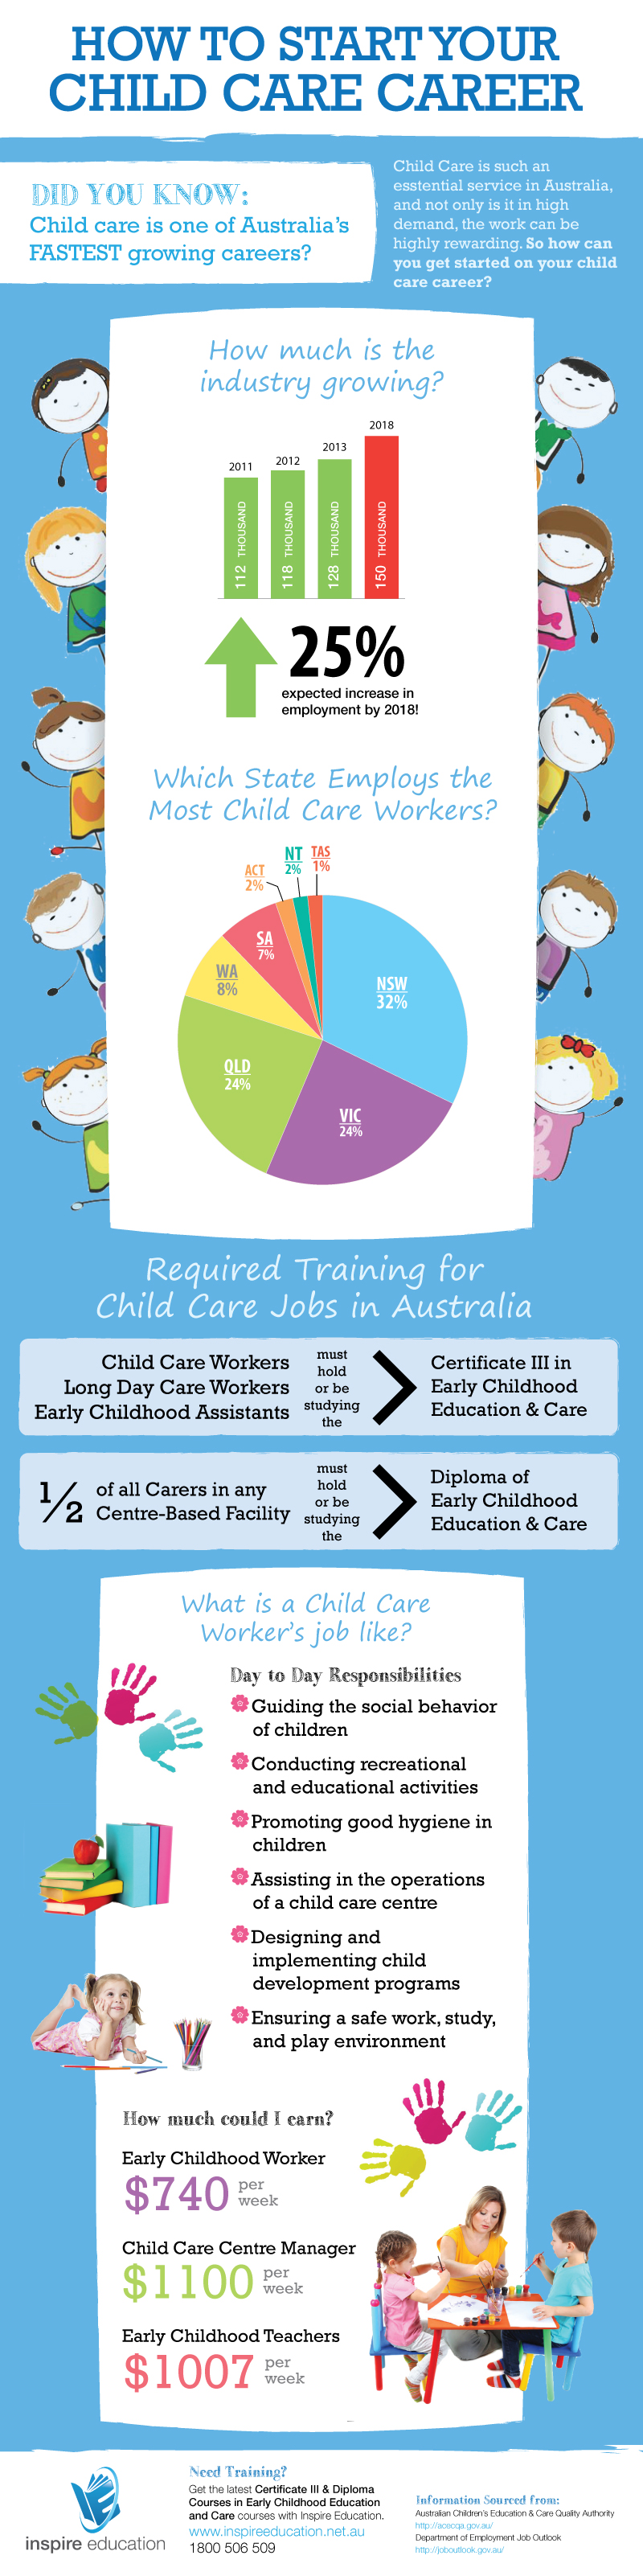 How to start a child care career in Australia infographic